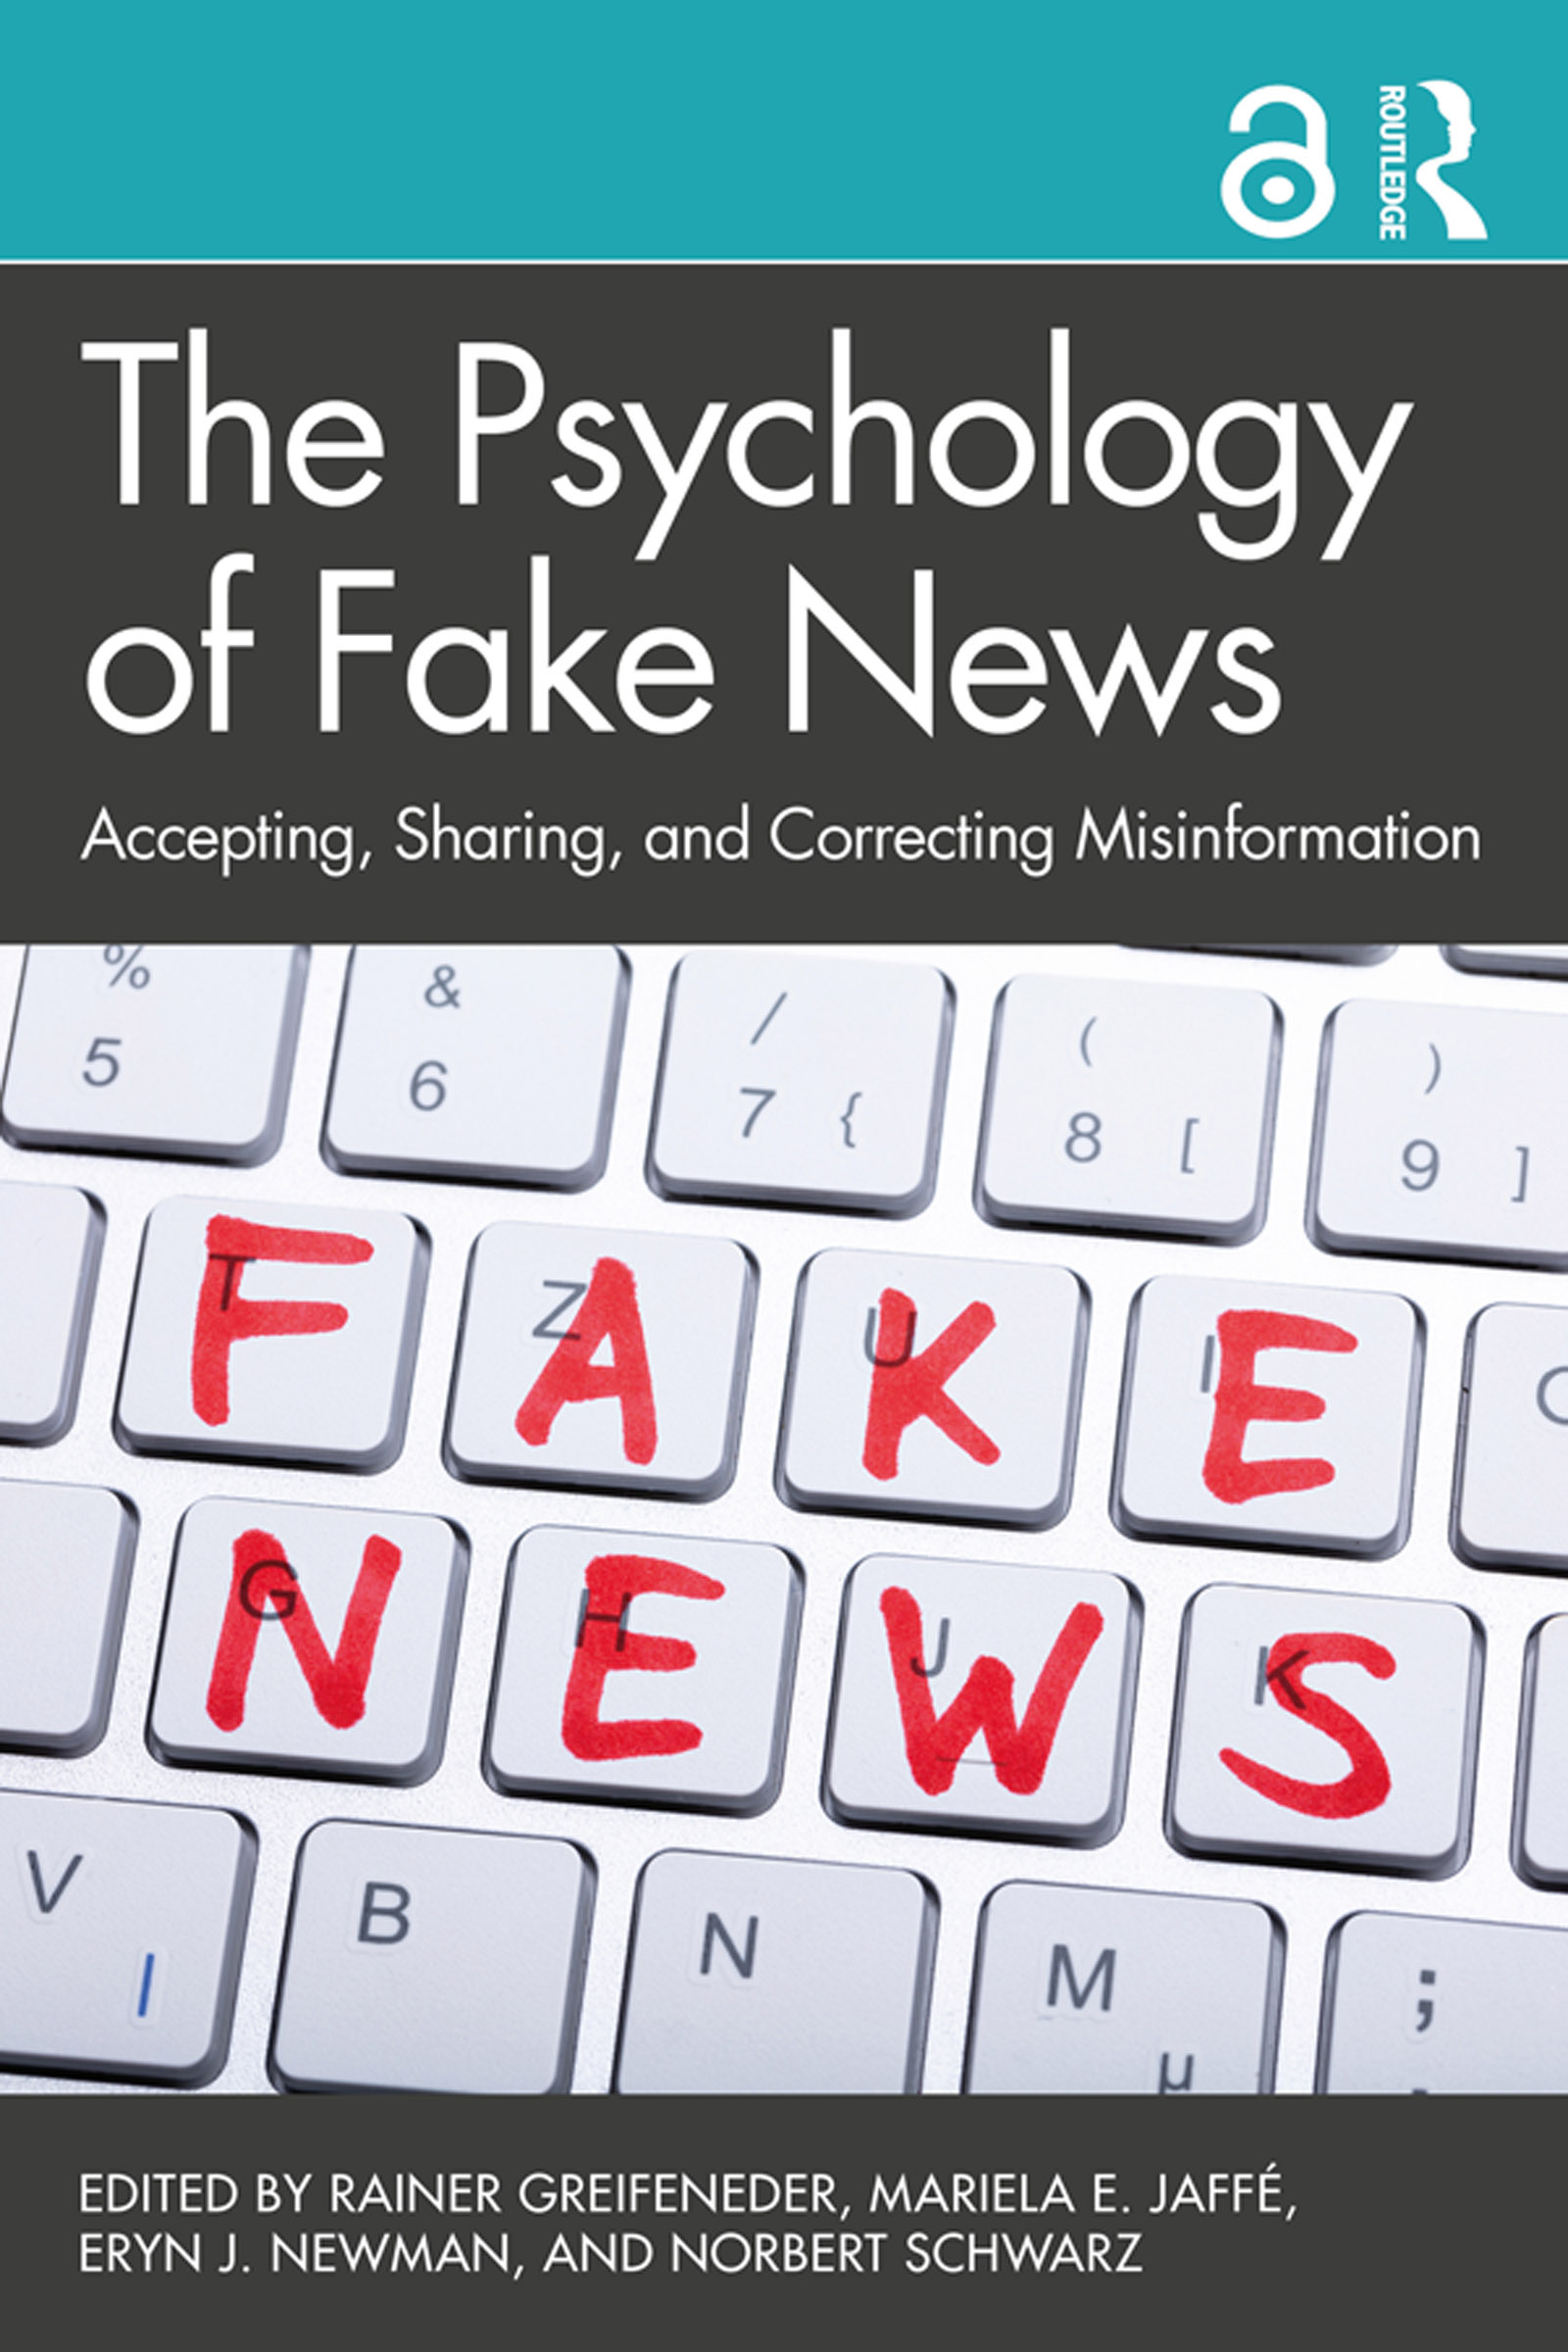 The Psychology of Fake News